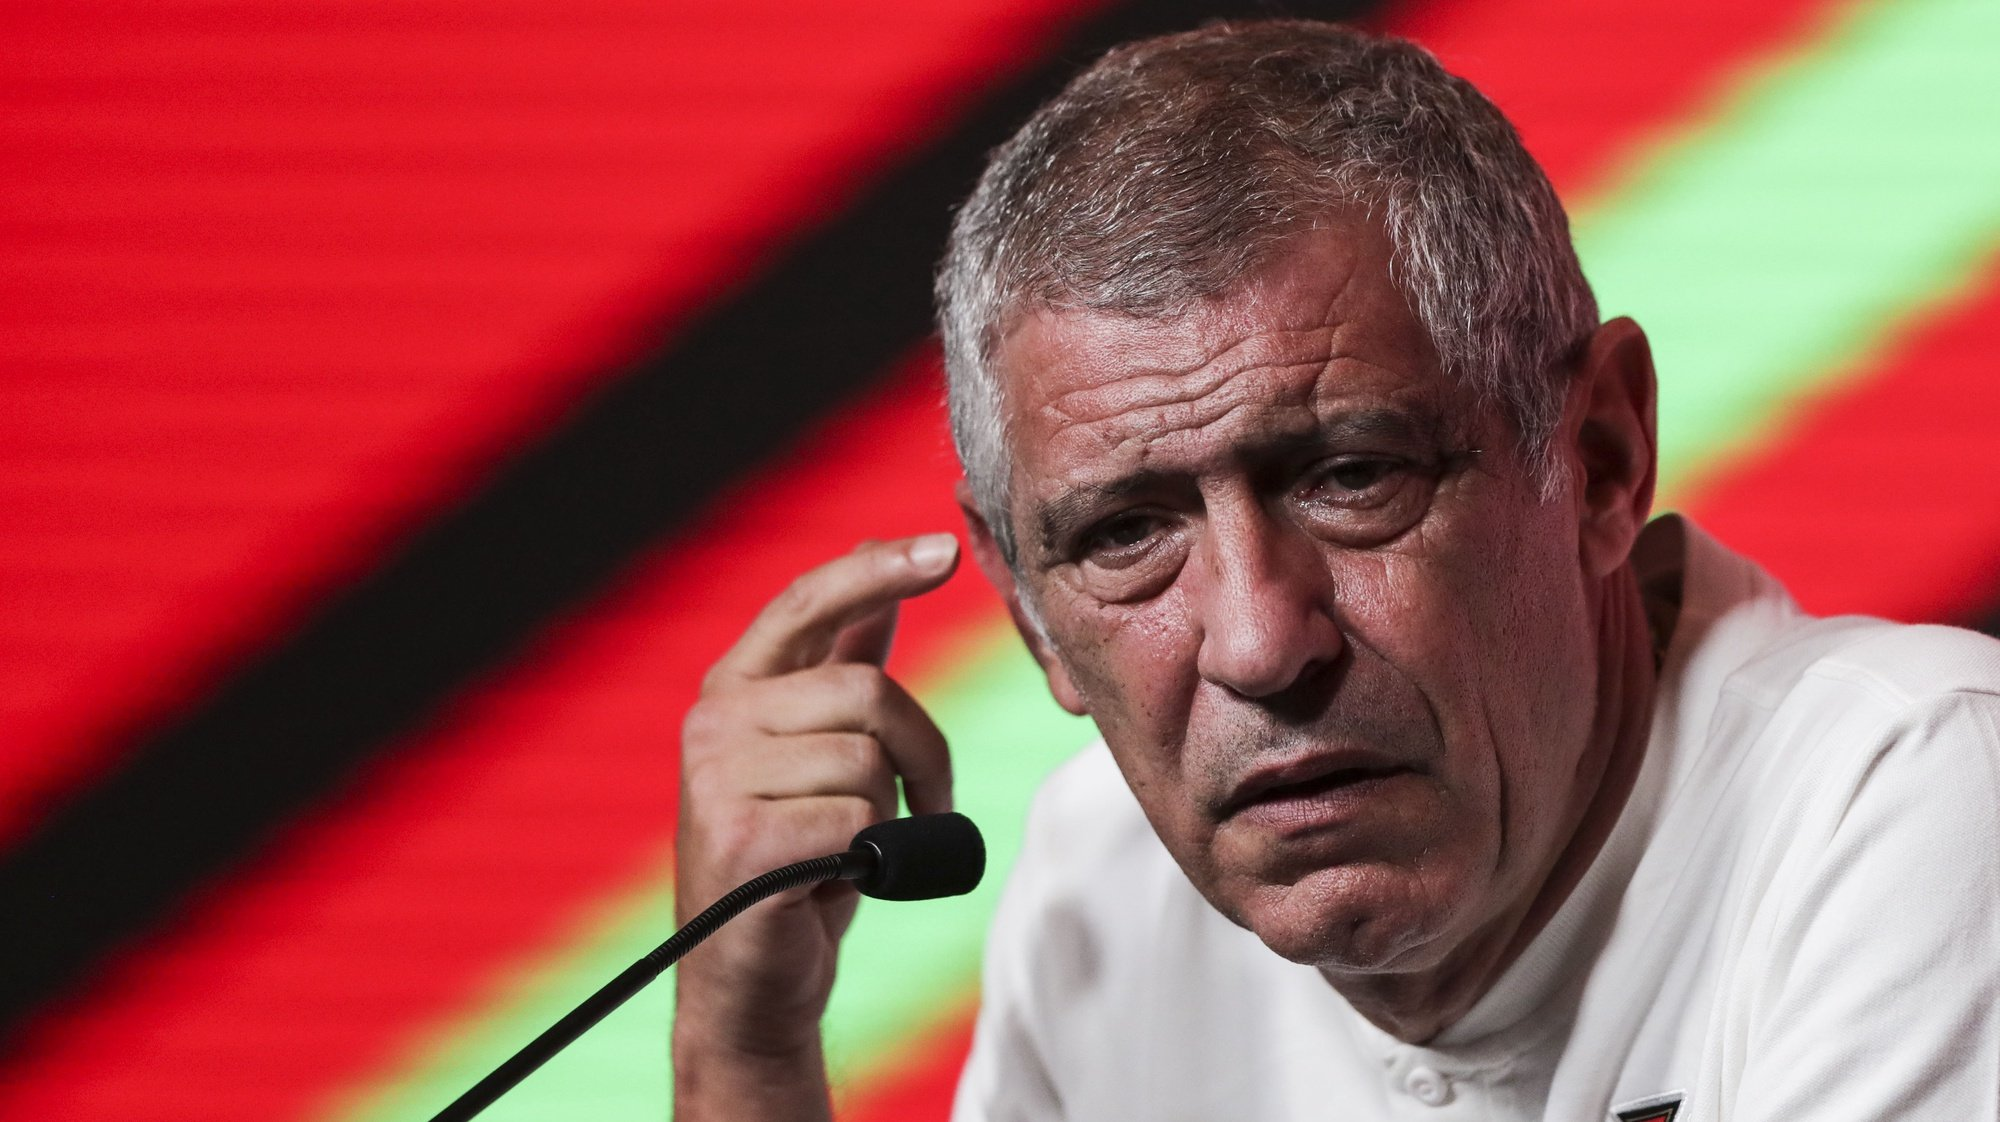 Portuguese head coach Fernando Santos talking on the press conference after Portugal's national team training session at Oeiras, outskirts of Lisbon, Portugal, 08th october 2021. TIAGO PETINGA/LUSA